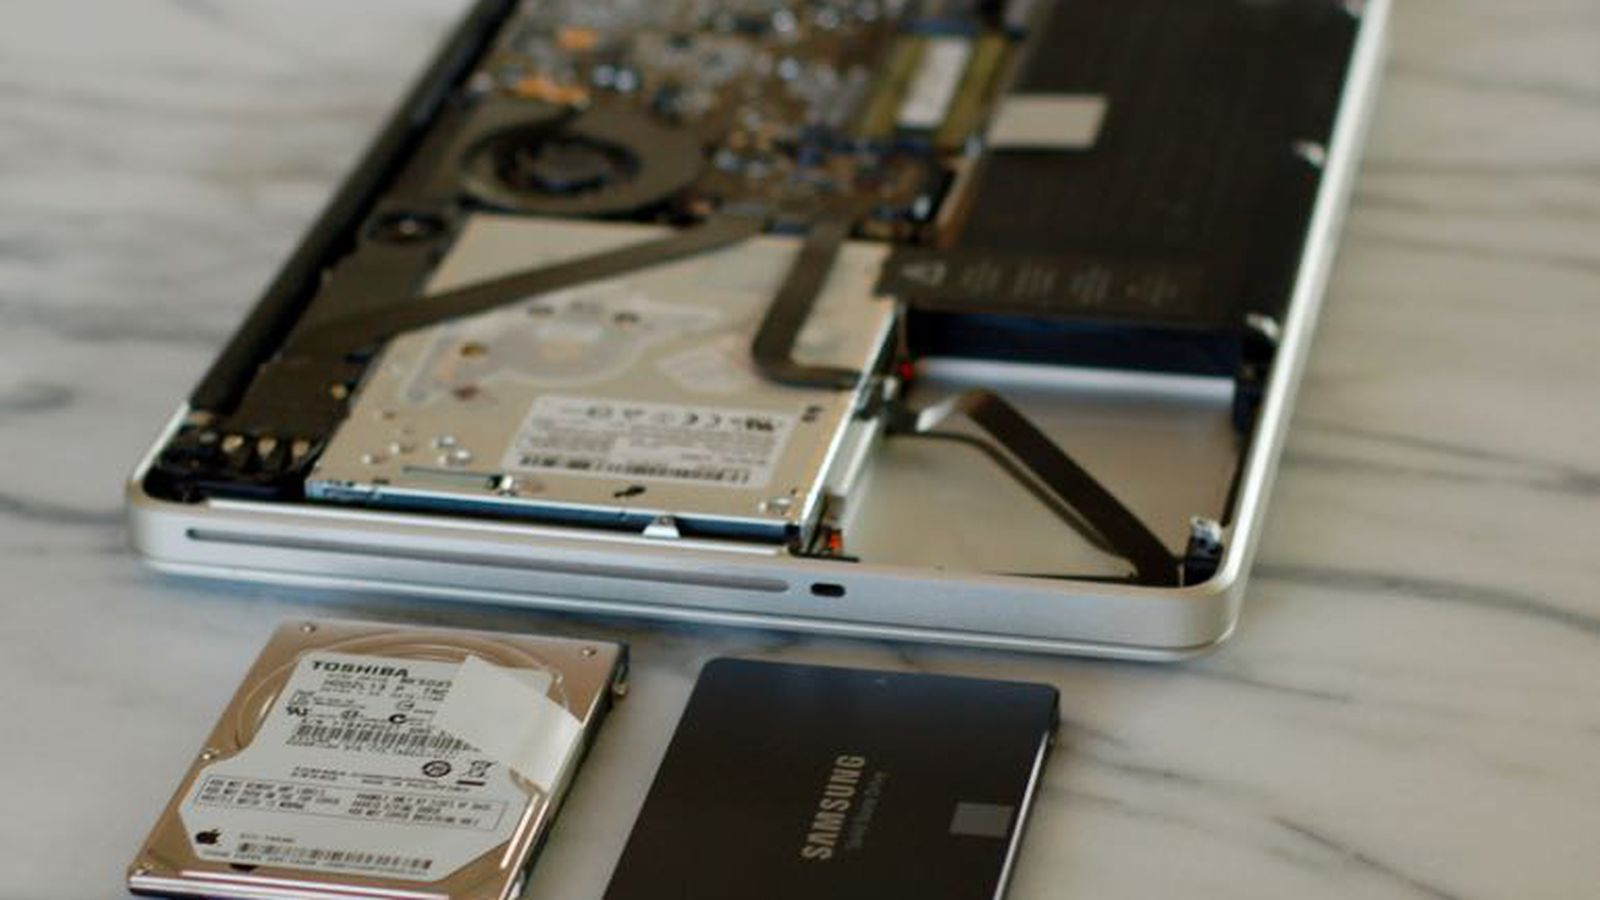 Installazione SSD su Apple MacBook Pro